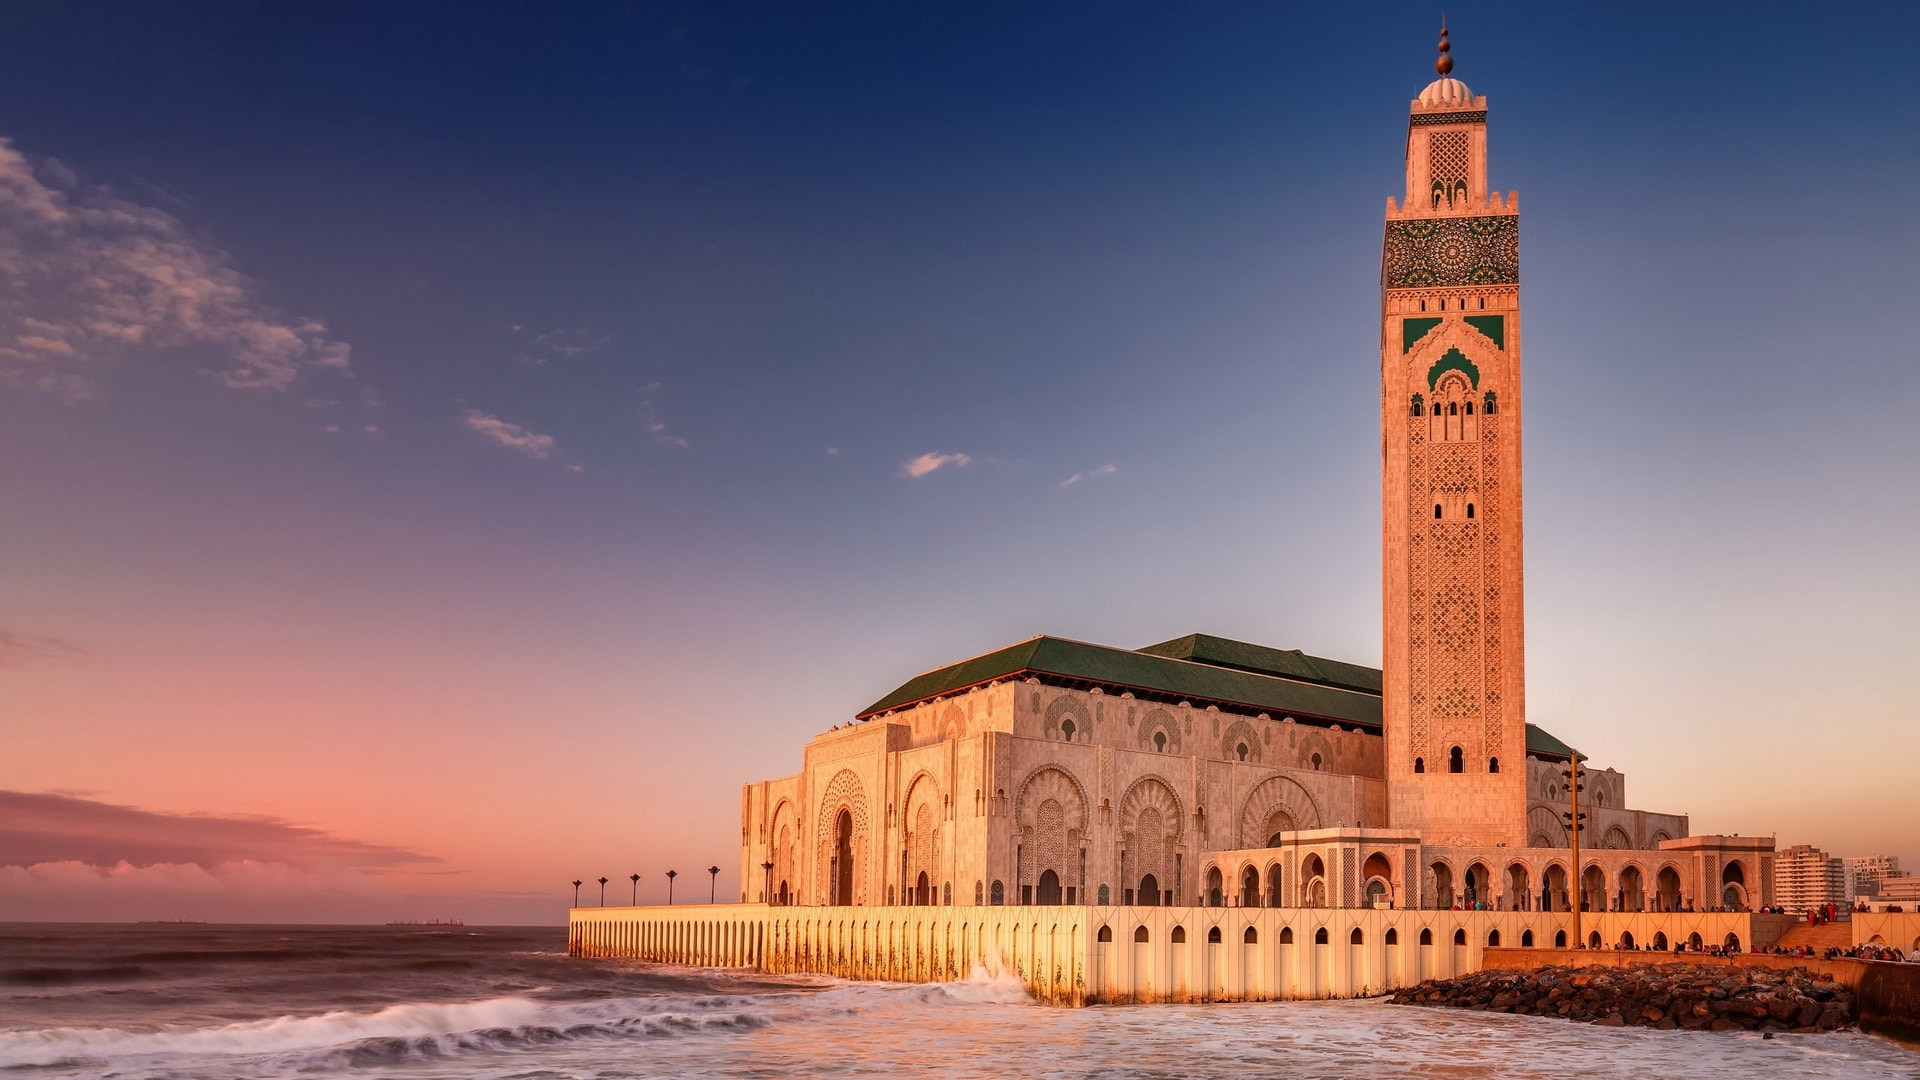 pathfinders treks - 6 day tour from casablanca